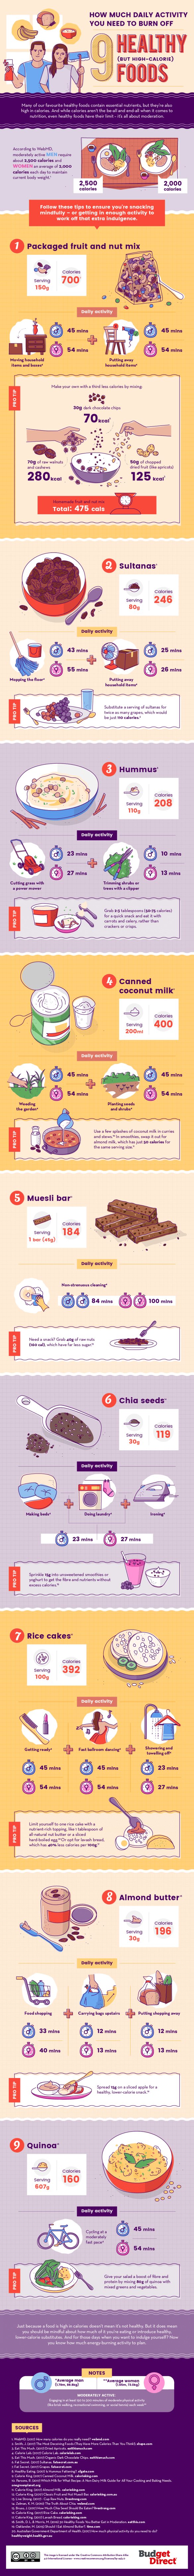 When Does Healthy Food Become Too Much: How to Manage High Calories Prevalent in Healthy Foods - Infographic